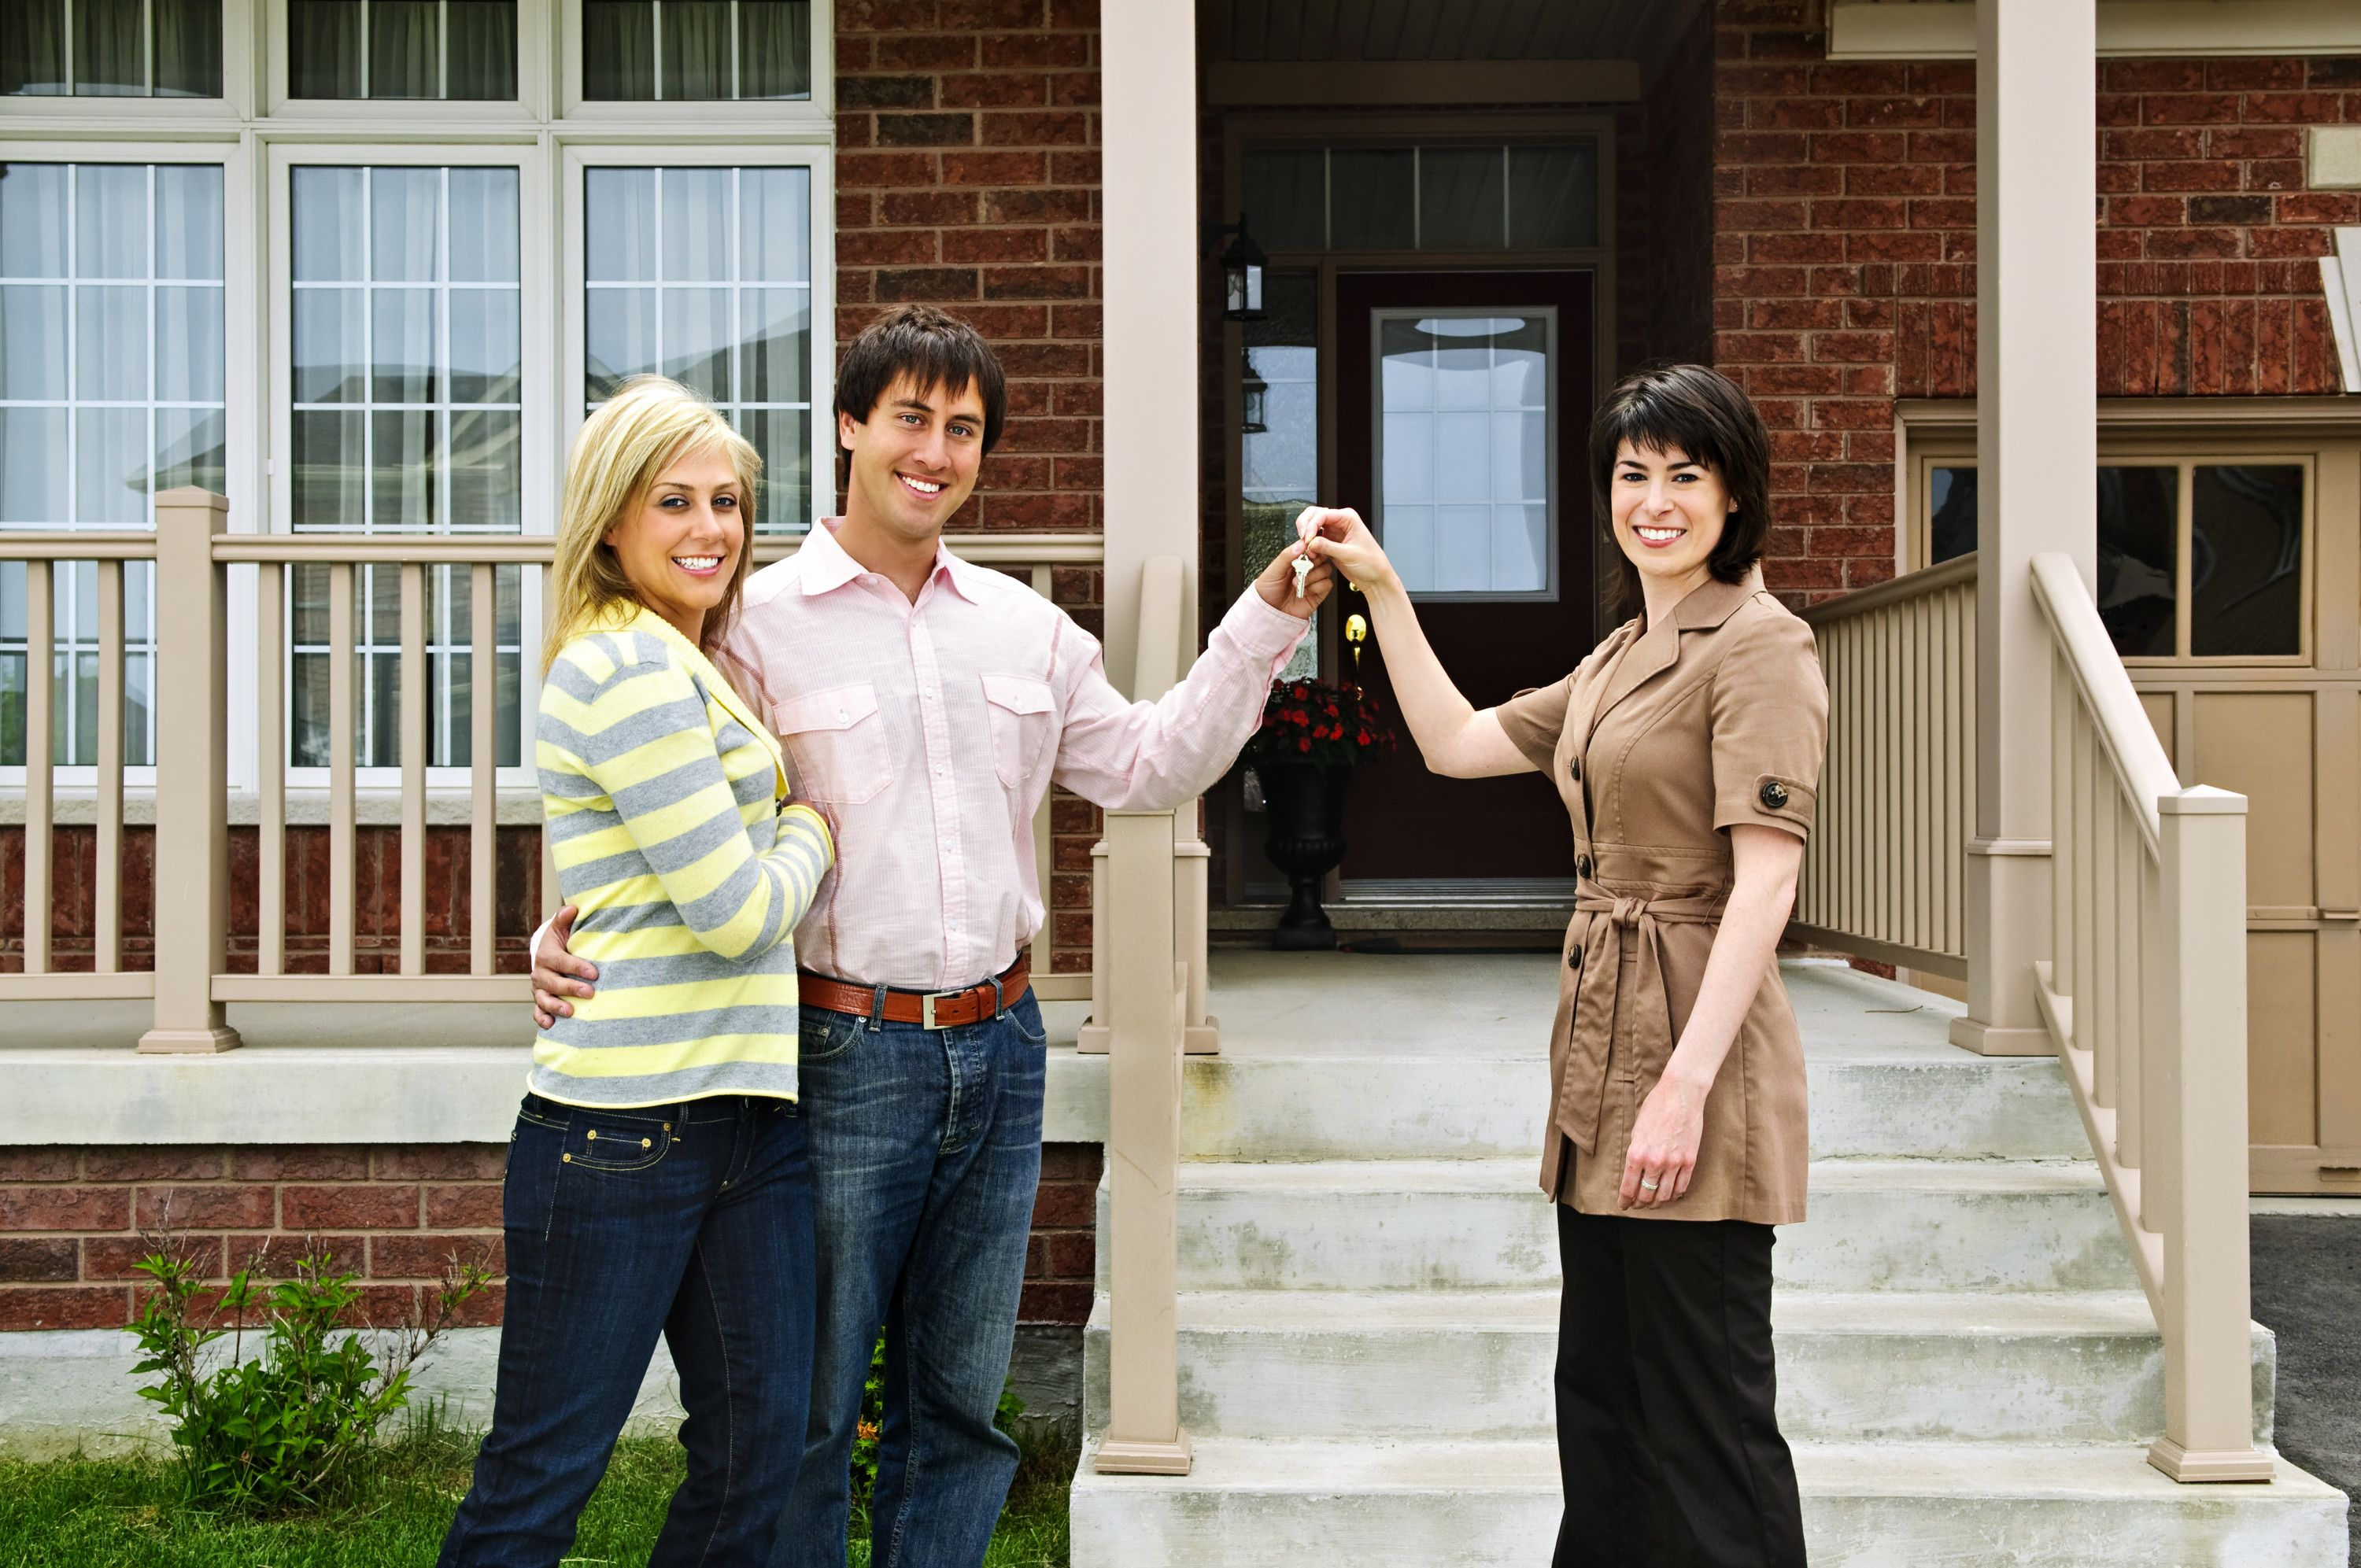 Buyers Of Newly Built Or Newly Acquired Homes Are Interested In The Warranties That The Seller Or Builder Is Of Being A Landlord Estate Agent Real Estate Agent